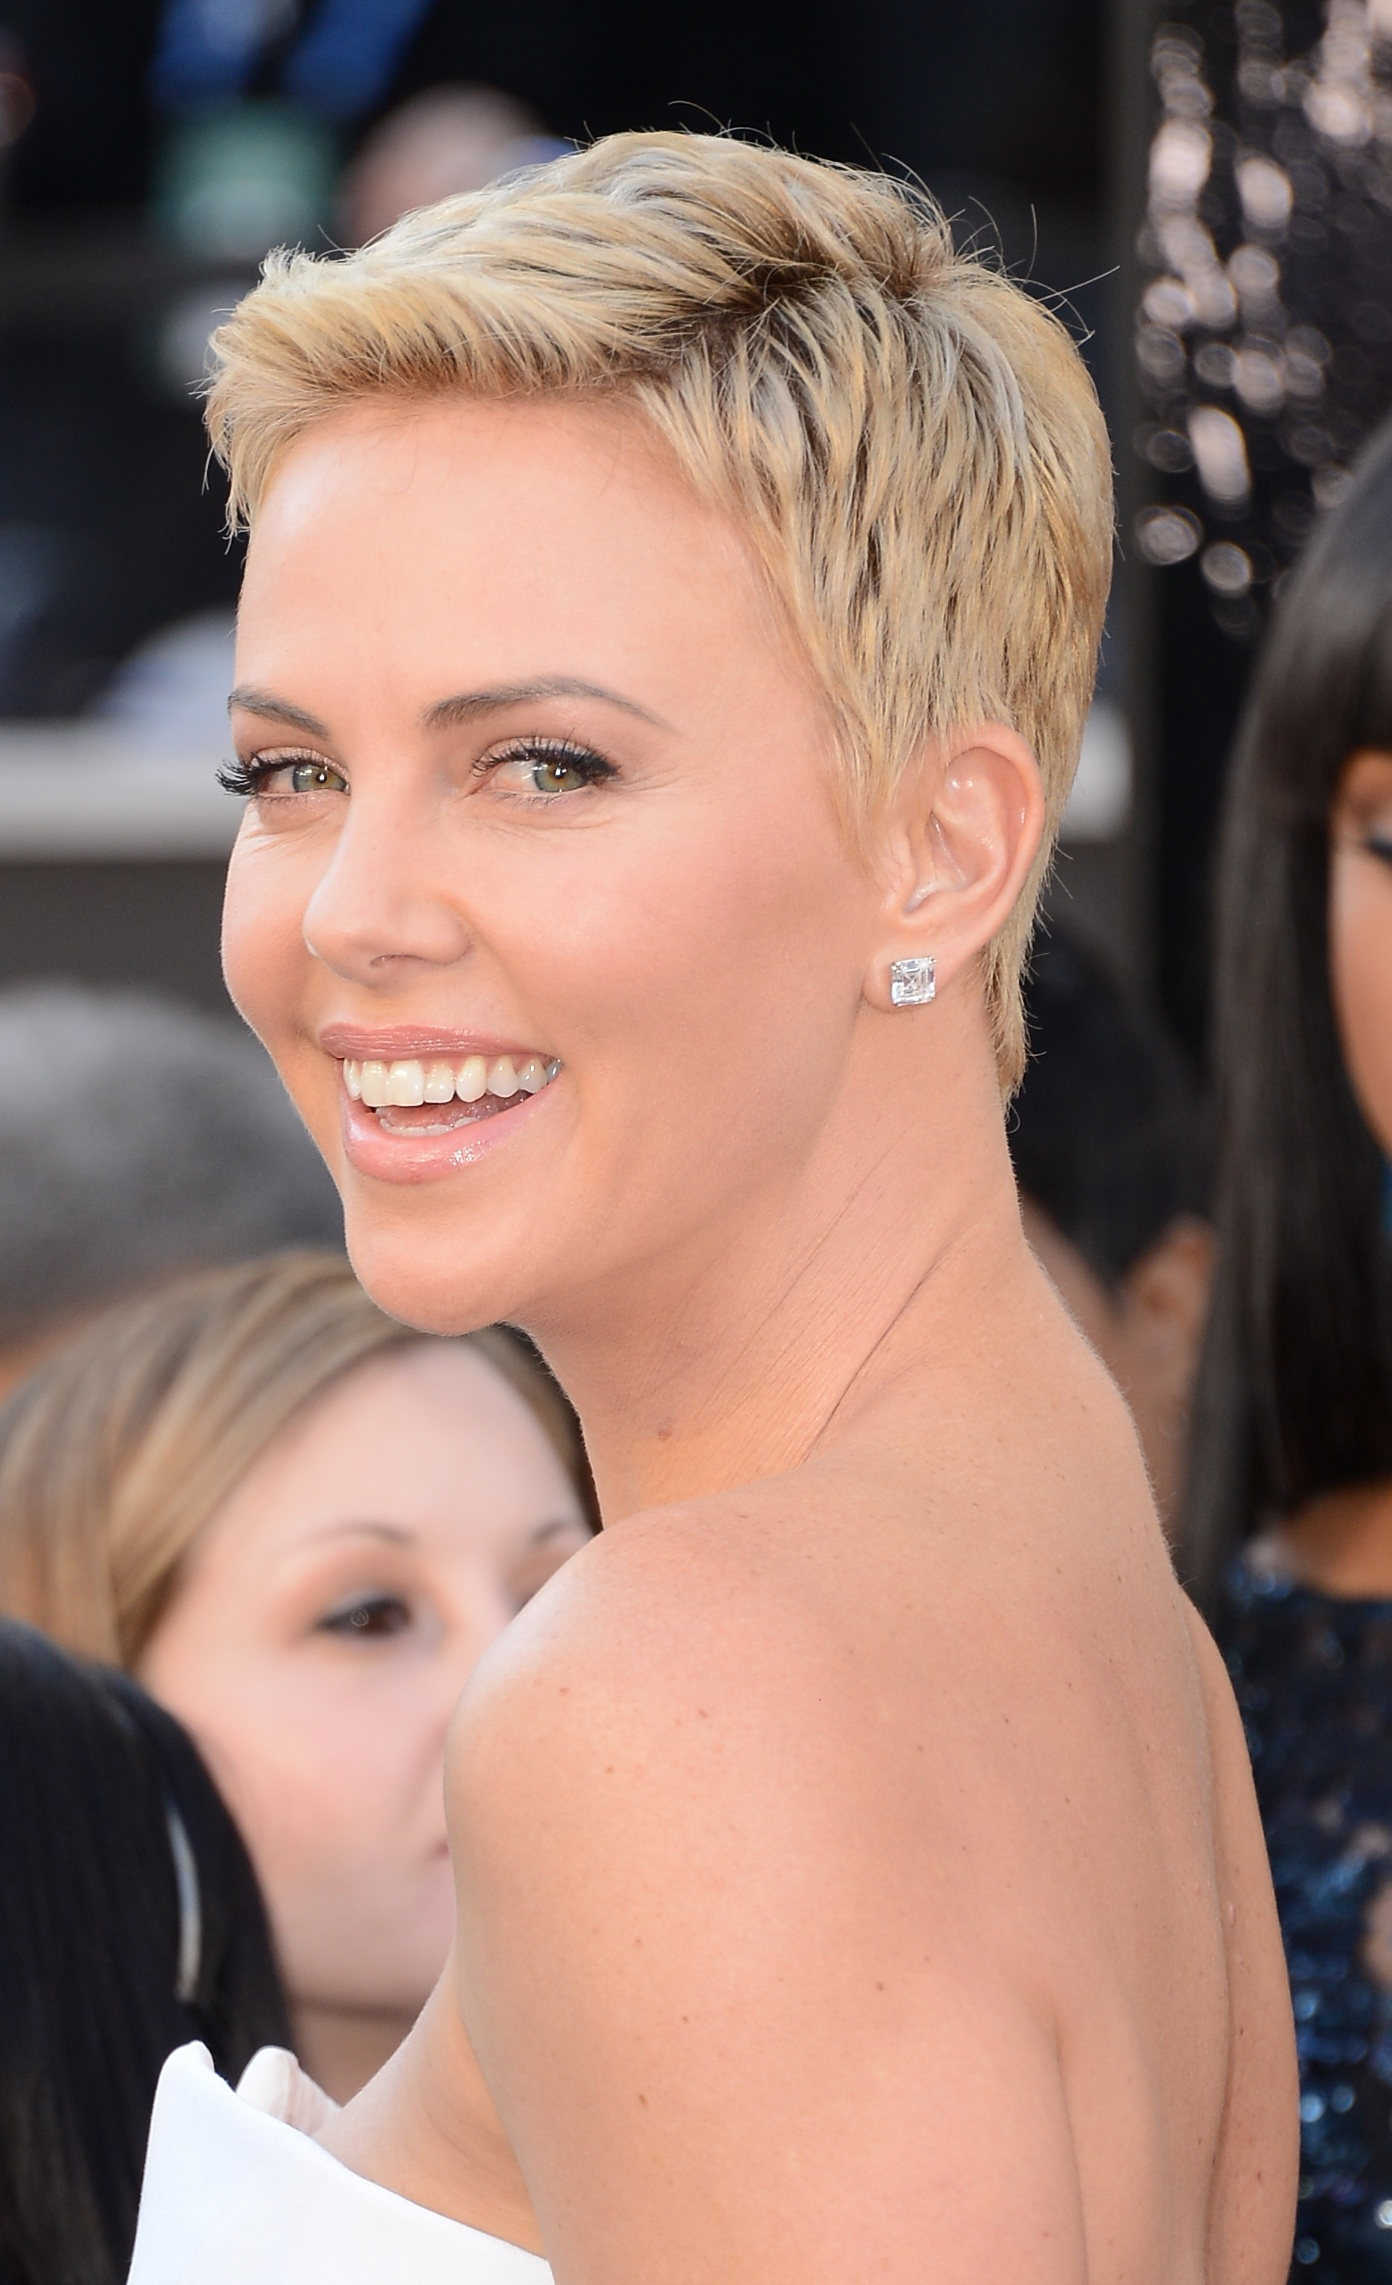 short, classic, pixie hairstyle | hairstyles | hair-photo